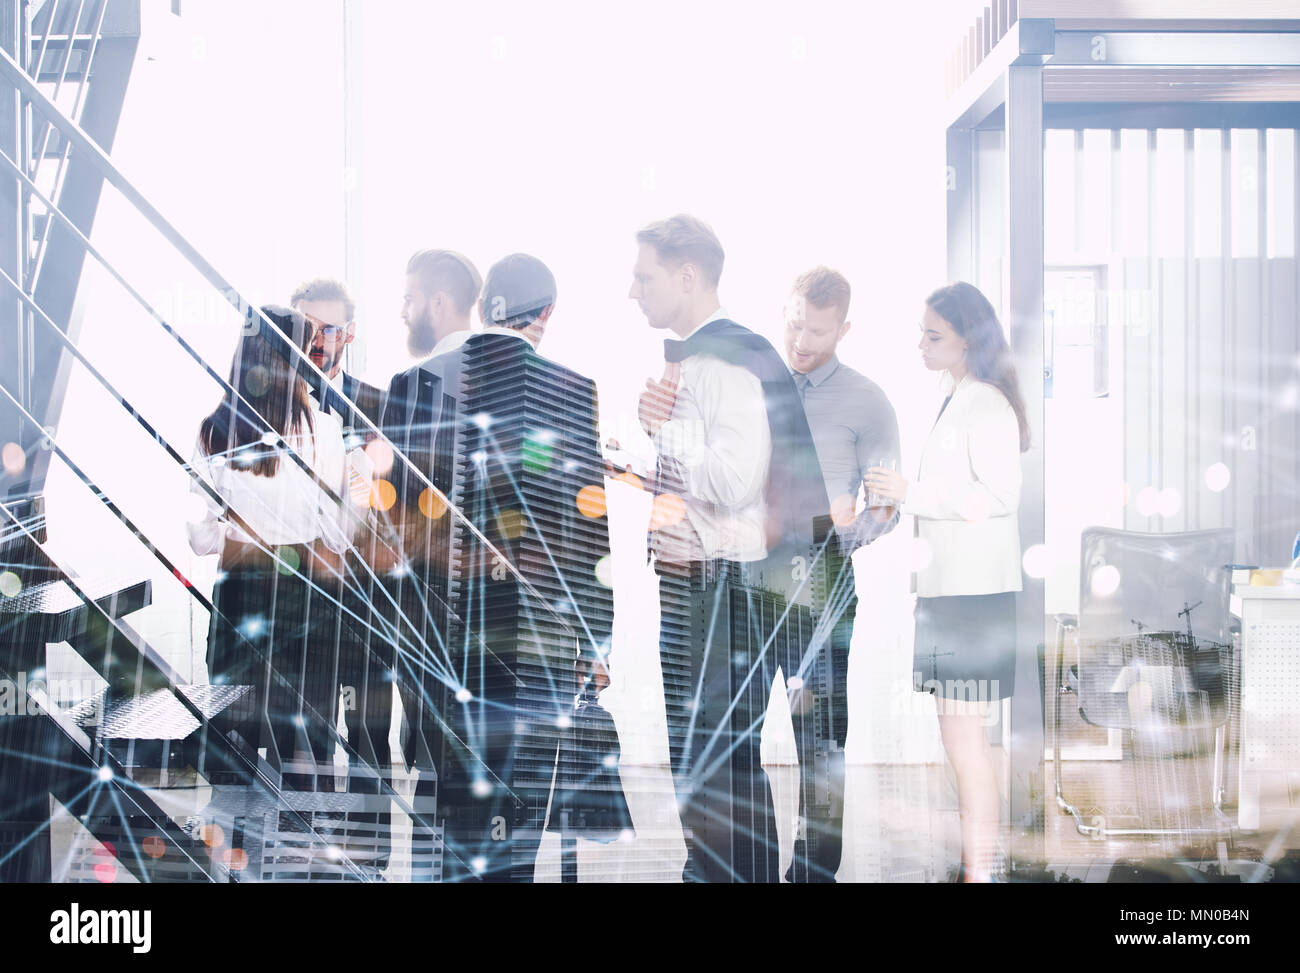 Business people work together in office with internet network effects. Concept of teamwork and partnership. double exposure Stock Photo